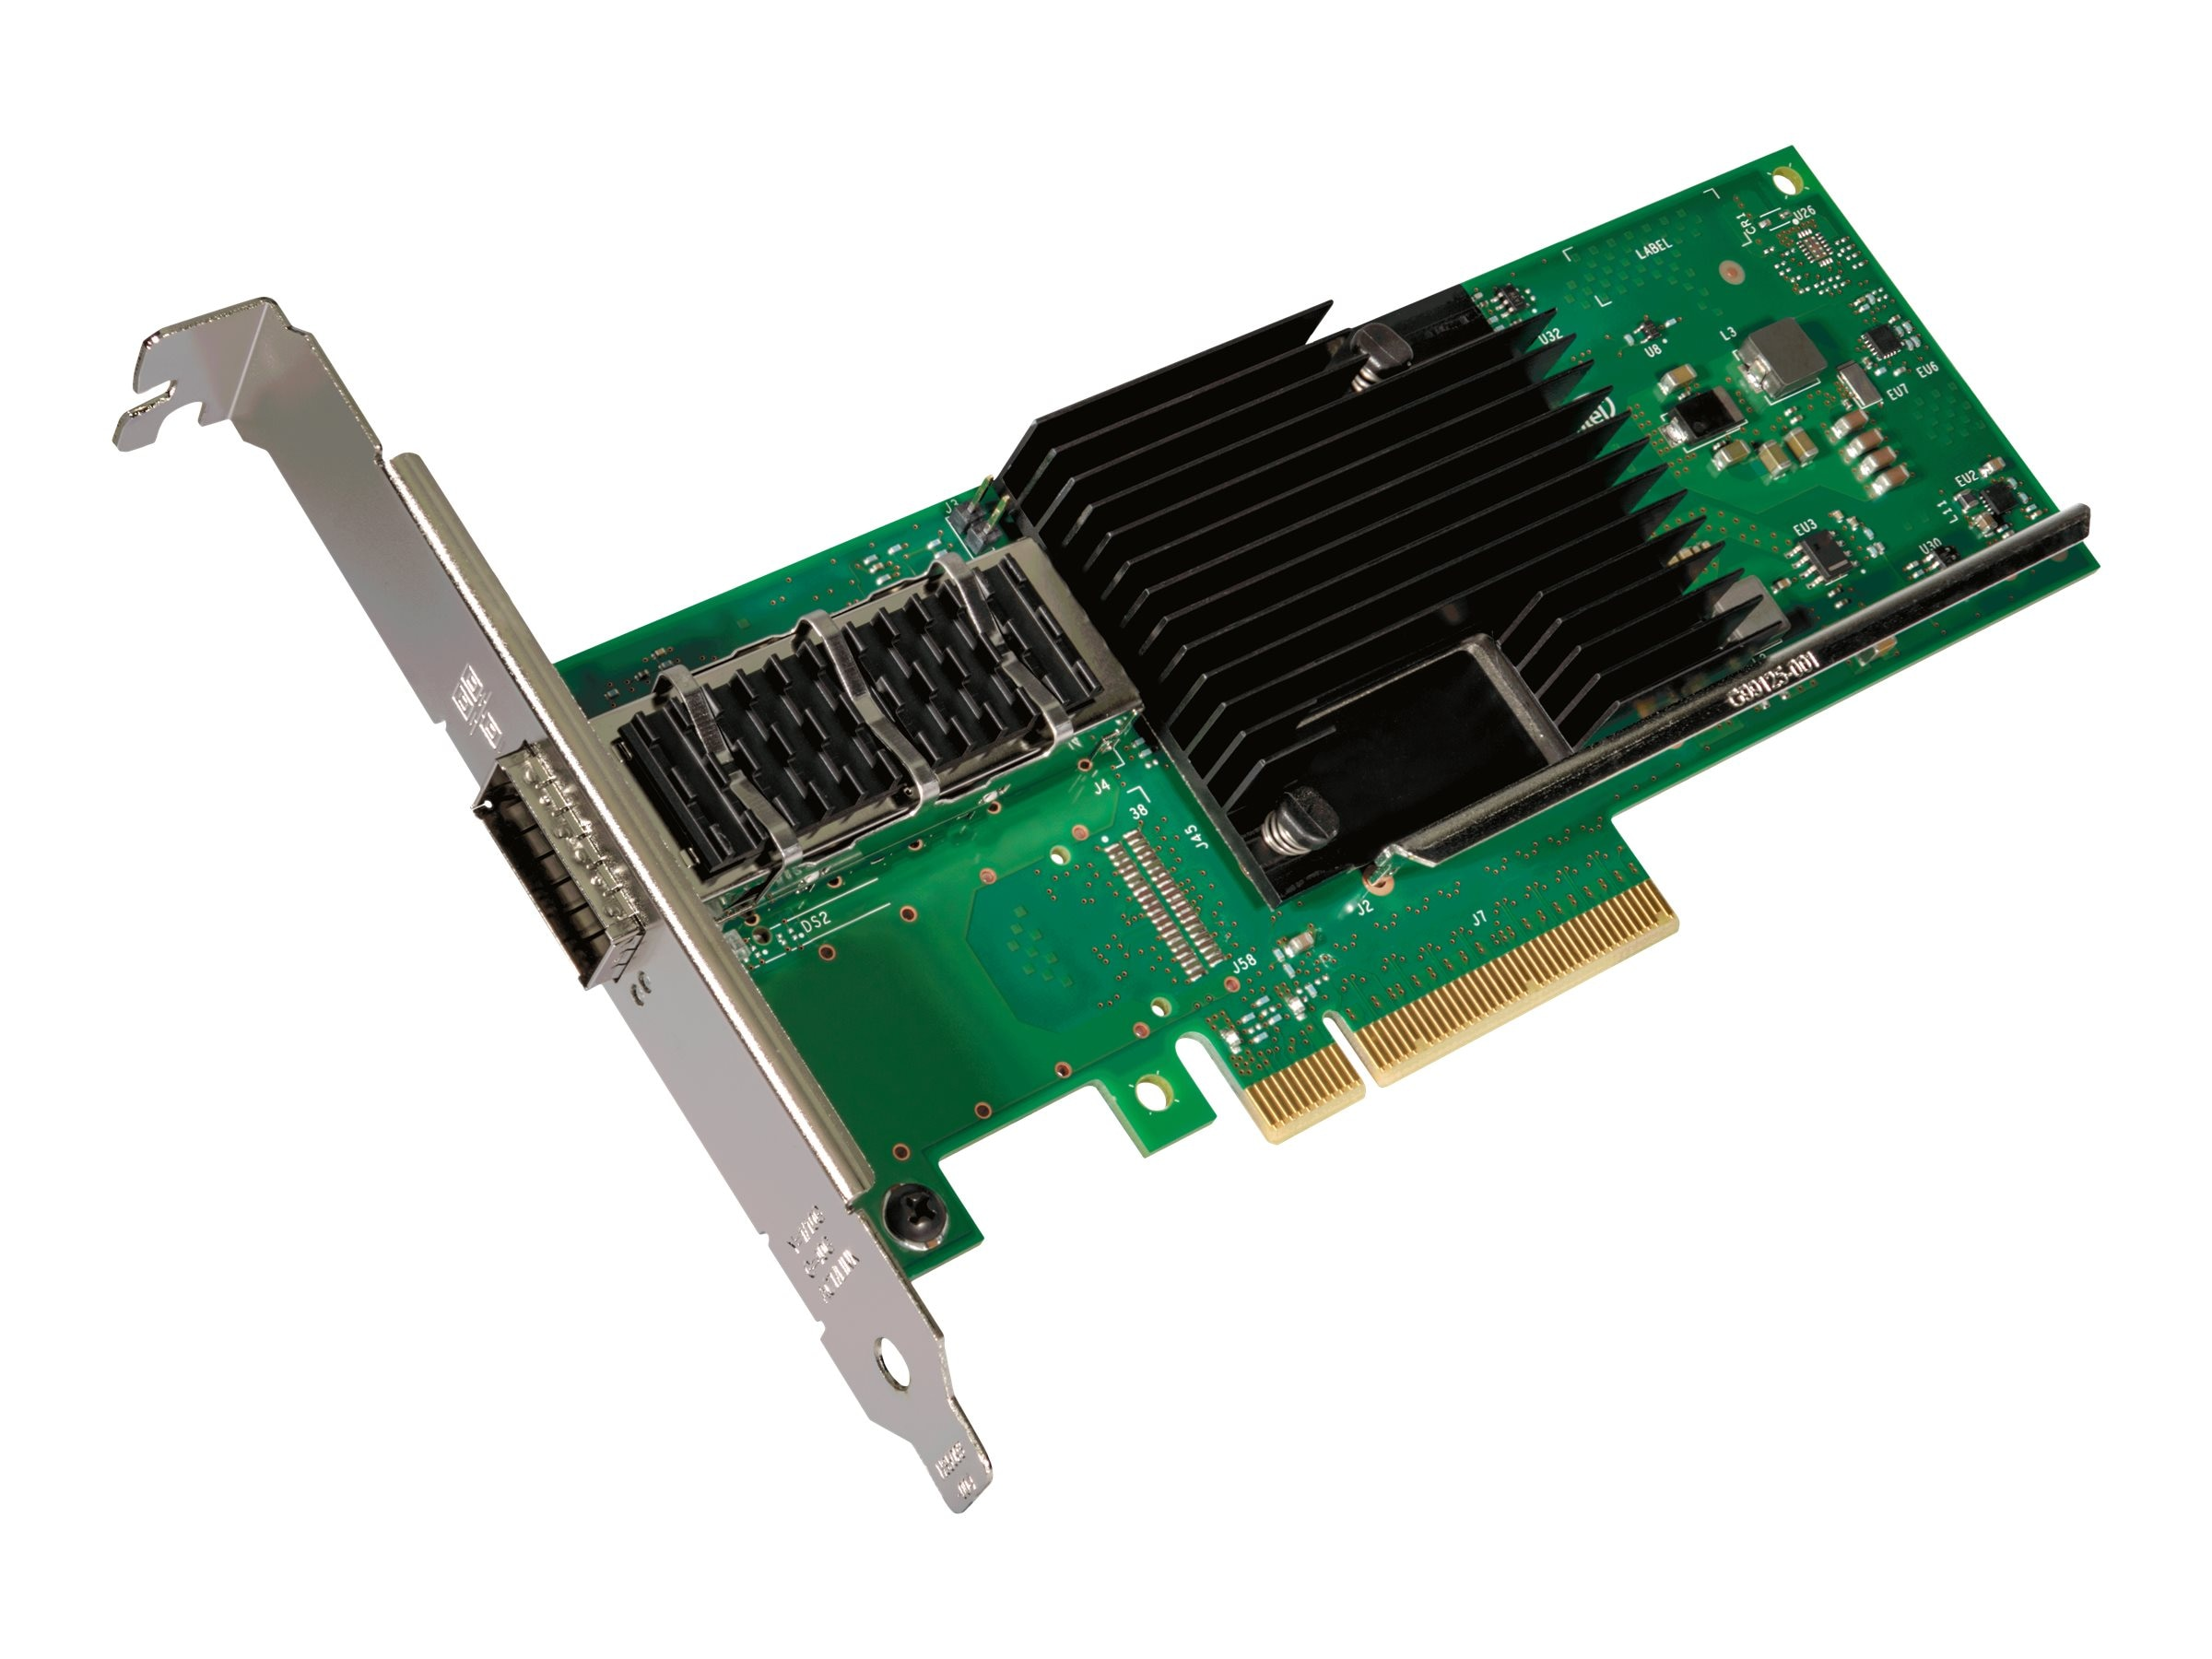 Intel Ethernet Converged Network Adapter, XL710QDA1, 17758766, Network Adapters & NICs